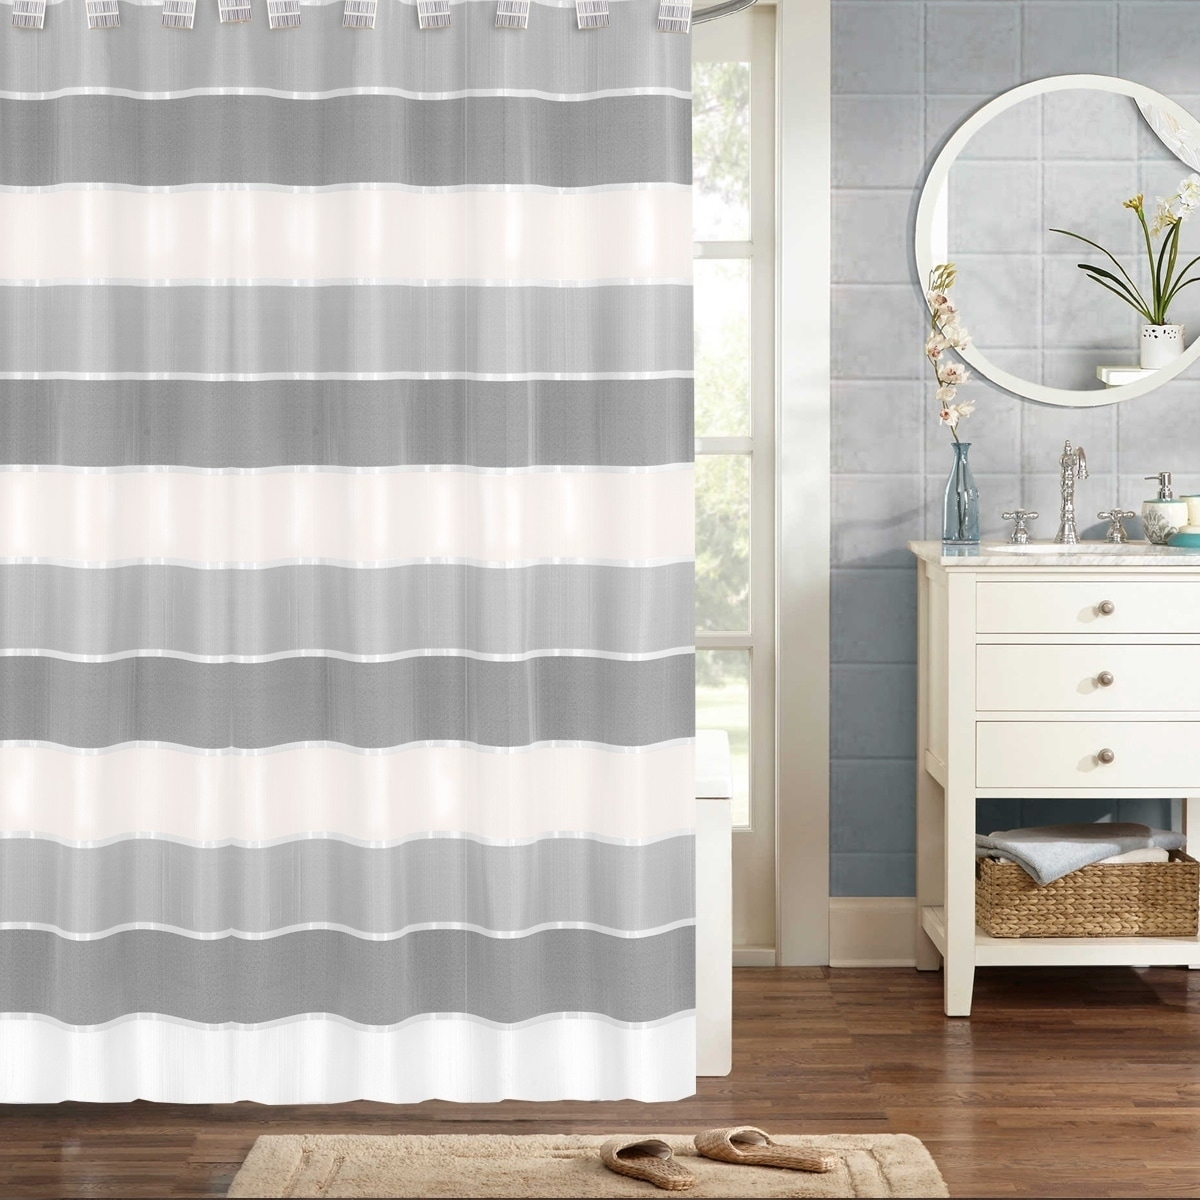 Modern Striped Shower Curtain 70 X72 Grey